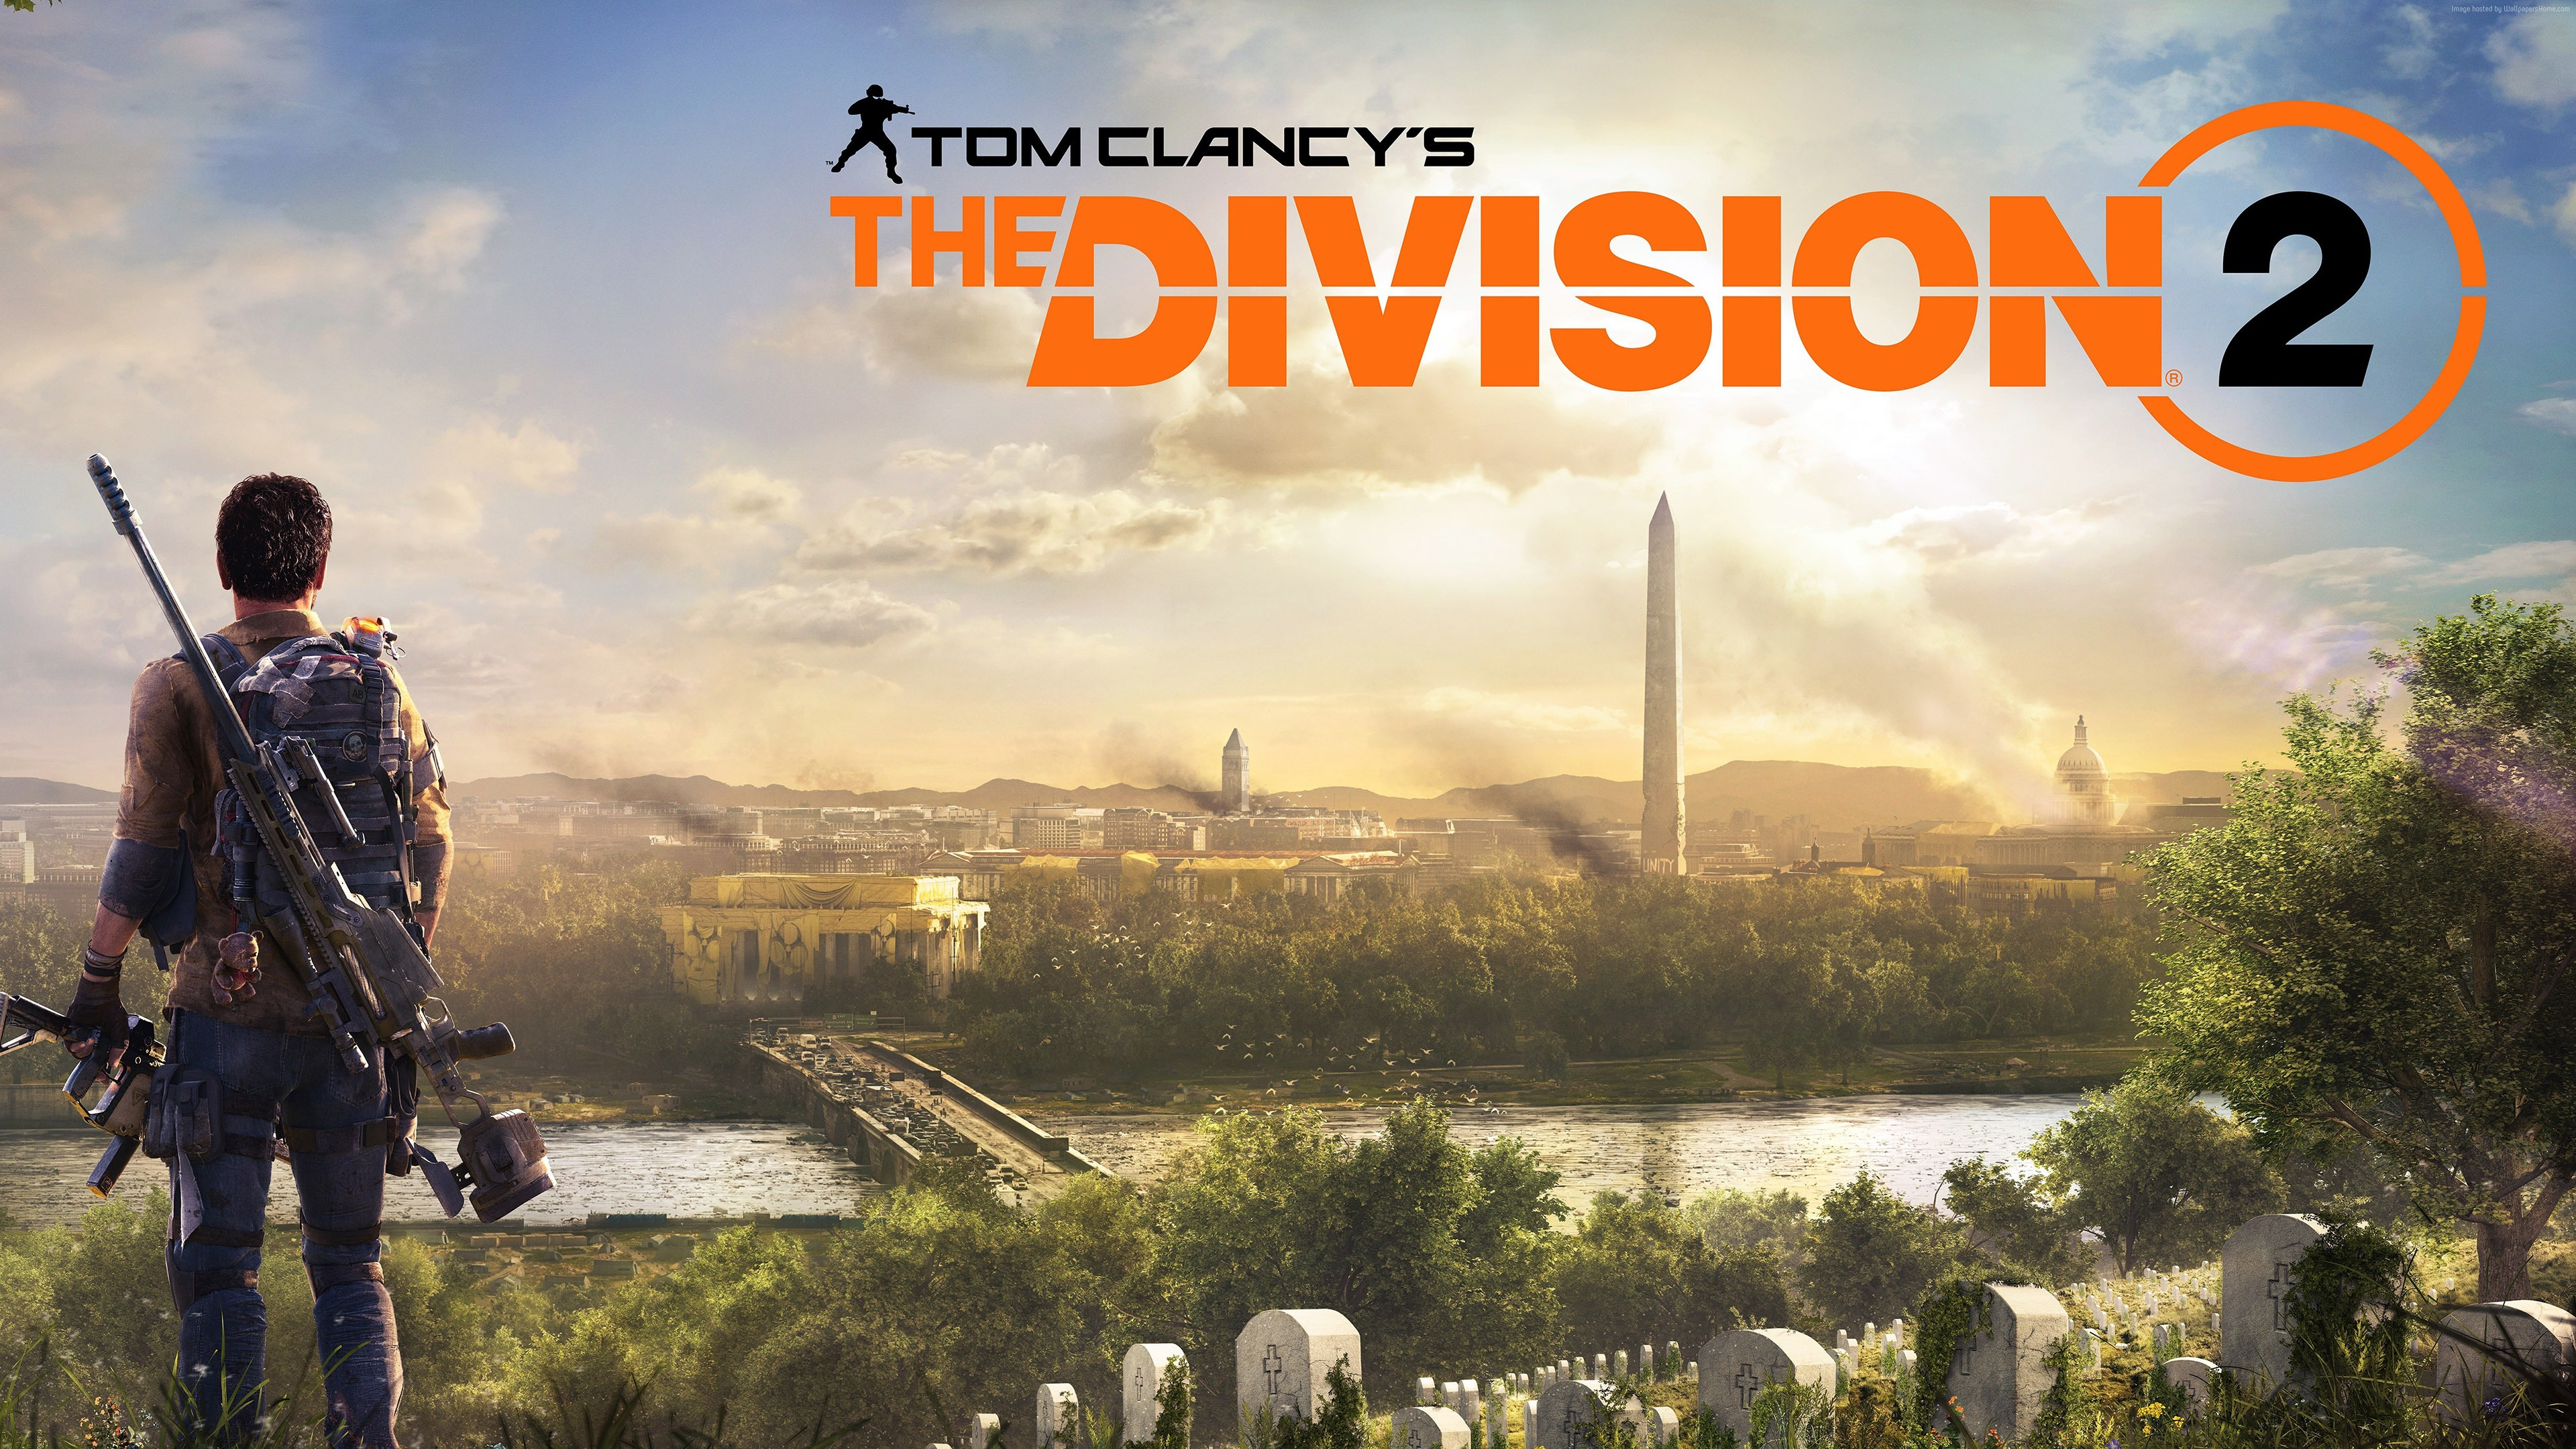 3440x1440 Wallpaper Pubg Tom Clancys The Division 2 Game 2018 Poster Preview